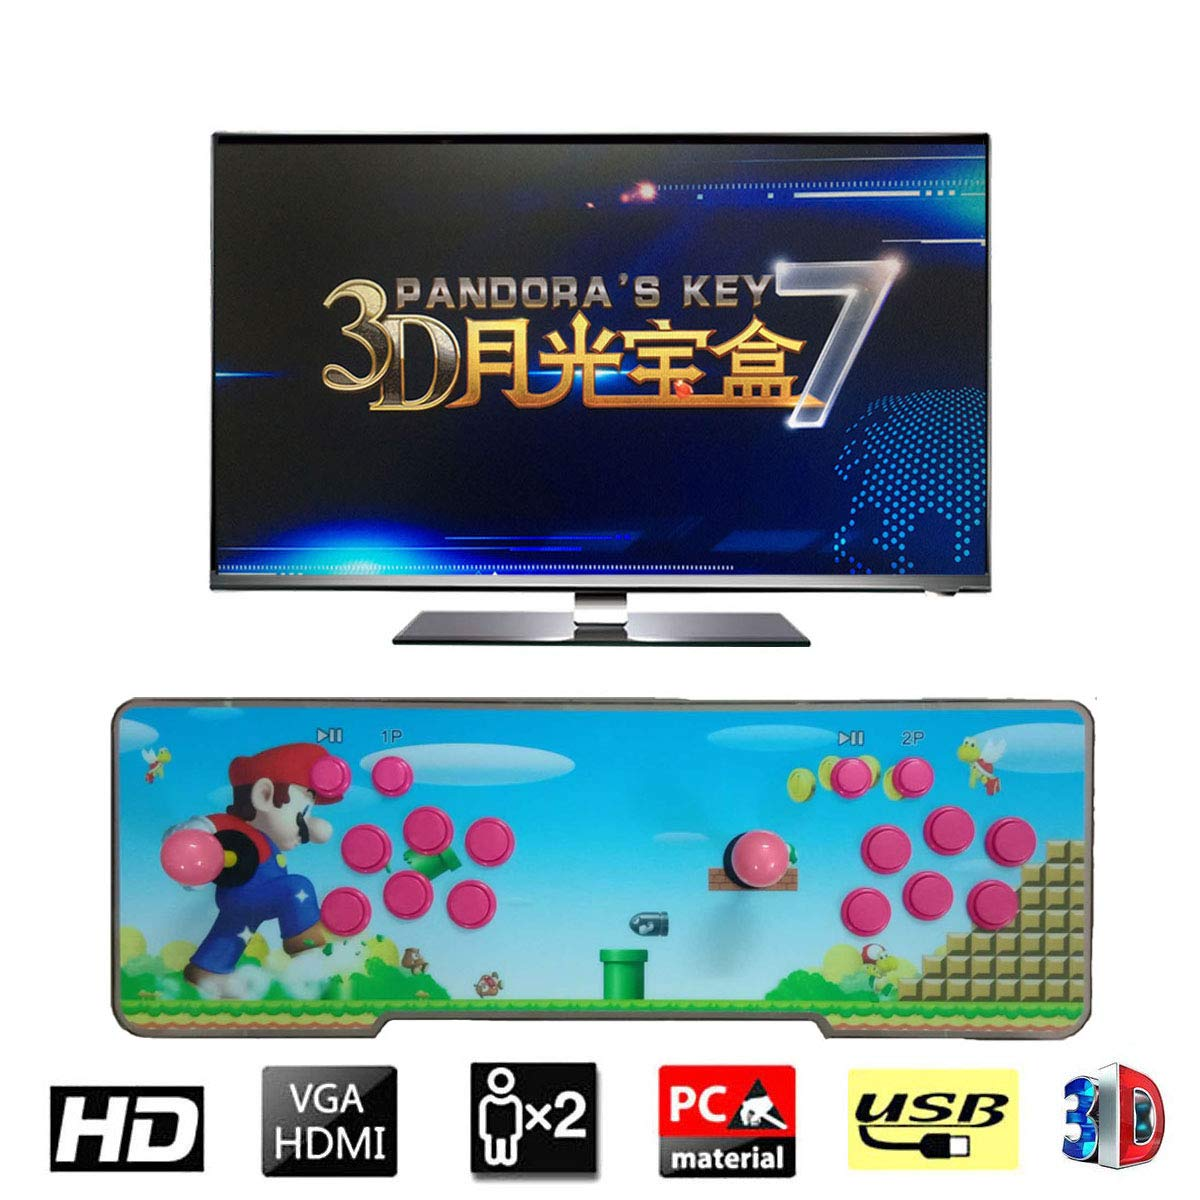 HAAMIIQII Pandora Key 7 3D Home Arcade Game Console | Support 3D Games | Add More Games | Full HD (1920x1080) Video | 2 Player Game Controls | Support 4 Players | HDMI/VGA/USB/AUX Audio Output